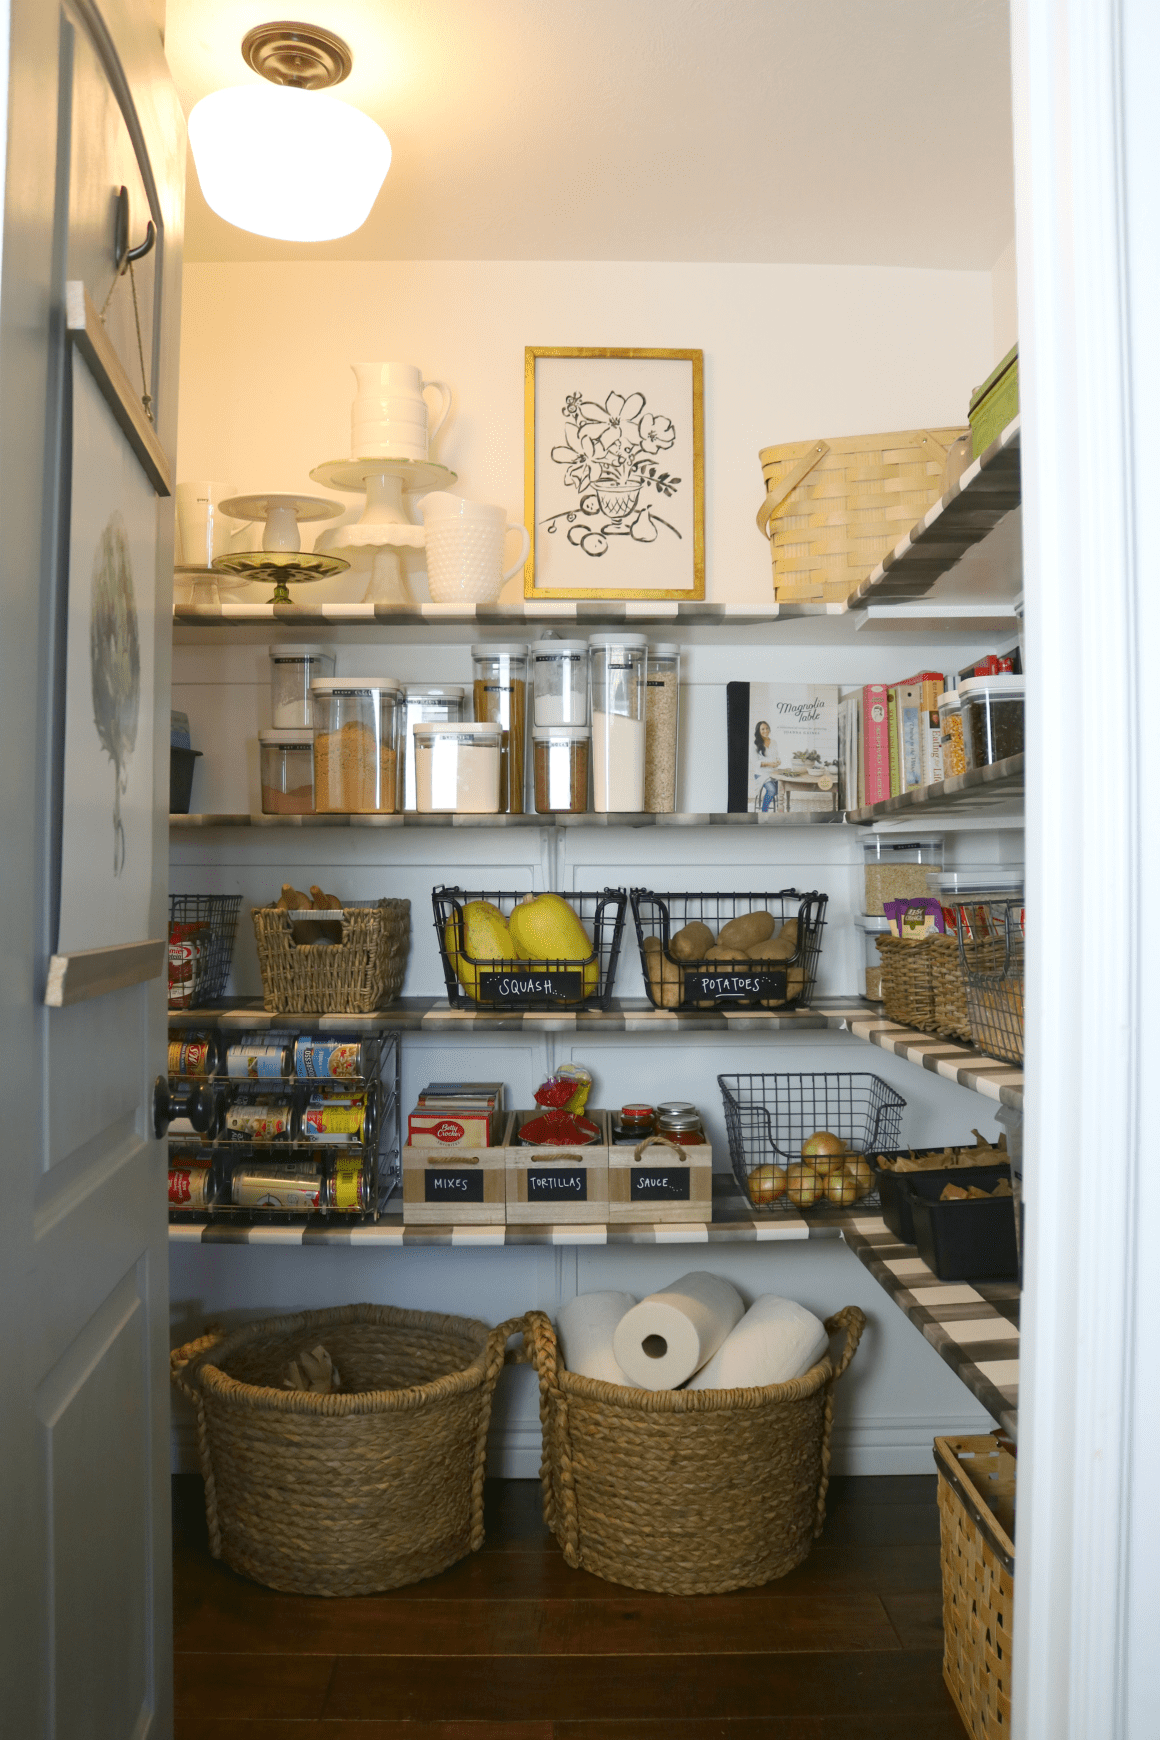 Pantry Makeover with Wallpaper Shelves #pantryshelving